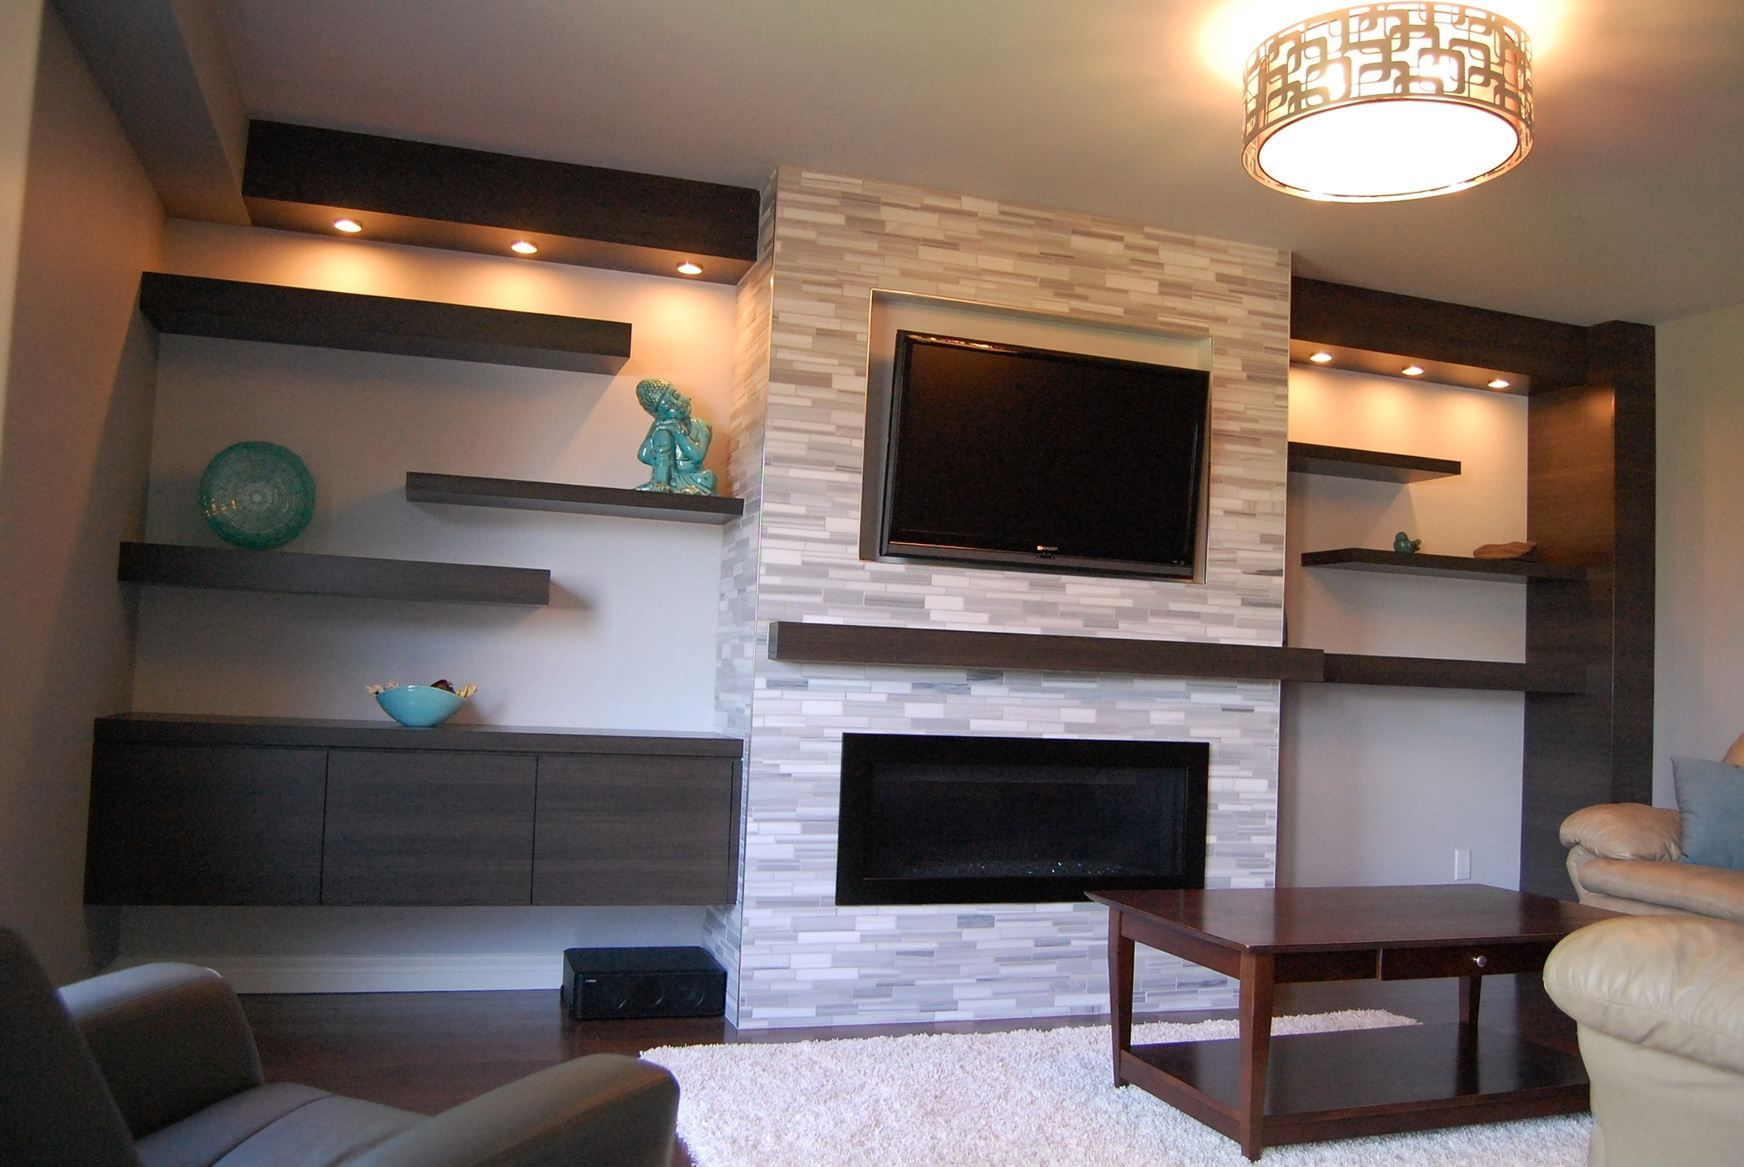 ideas on and fireplace about city tiled discover j wright great pin by pinterest girl room wall